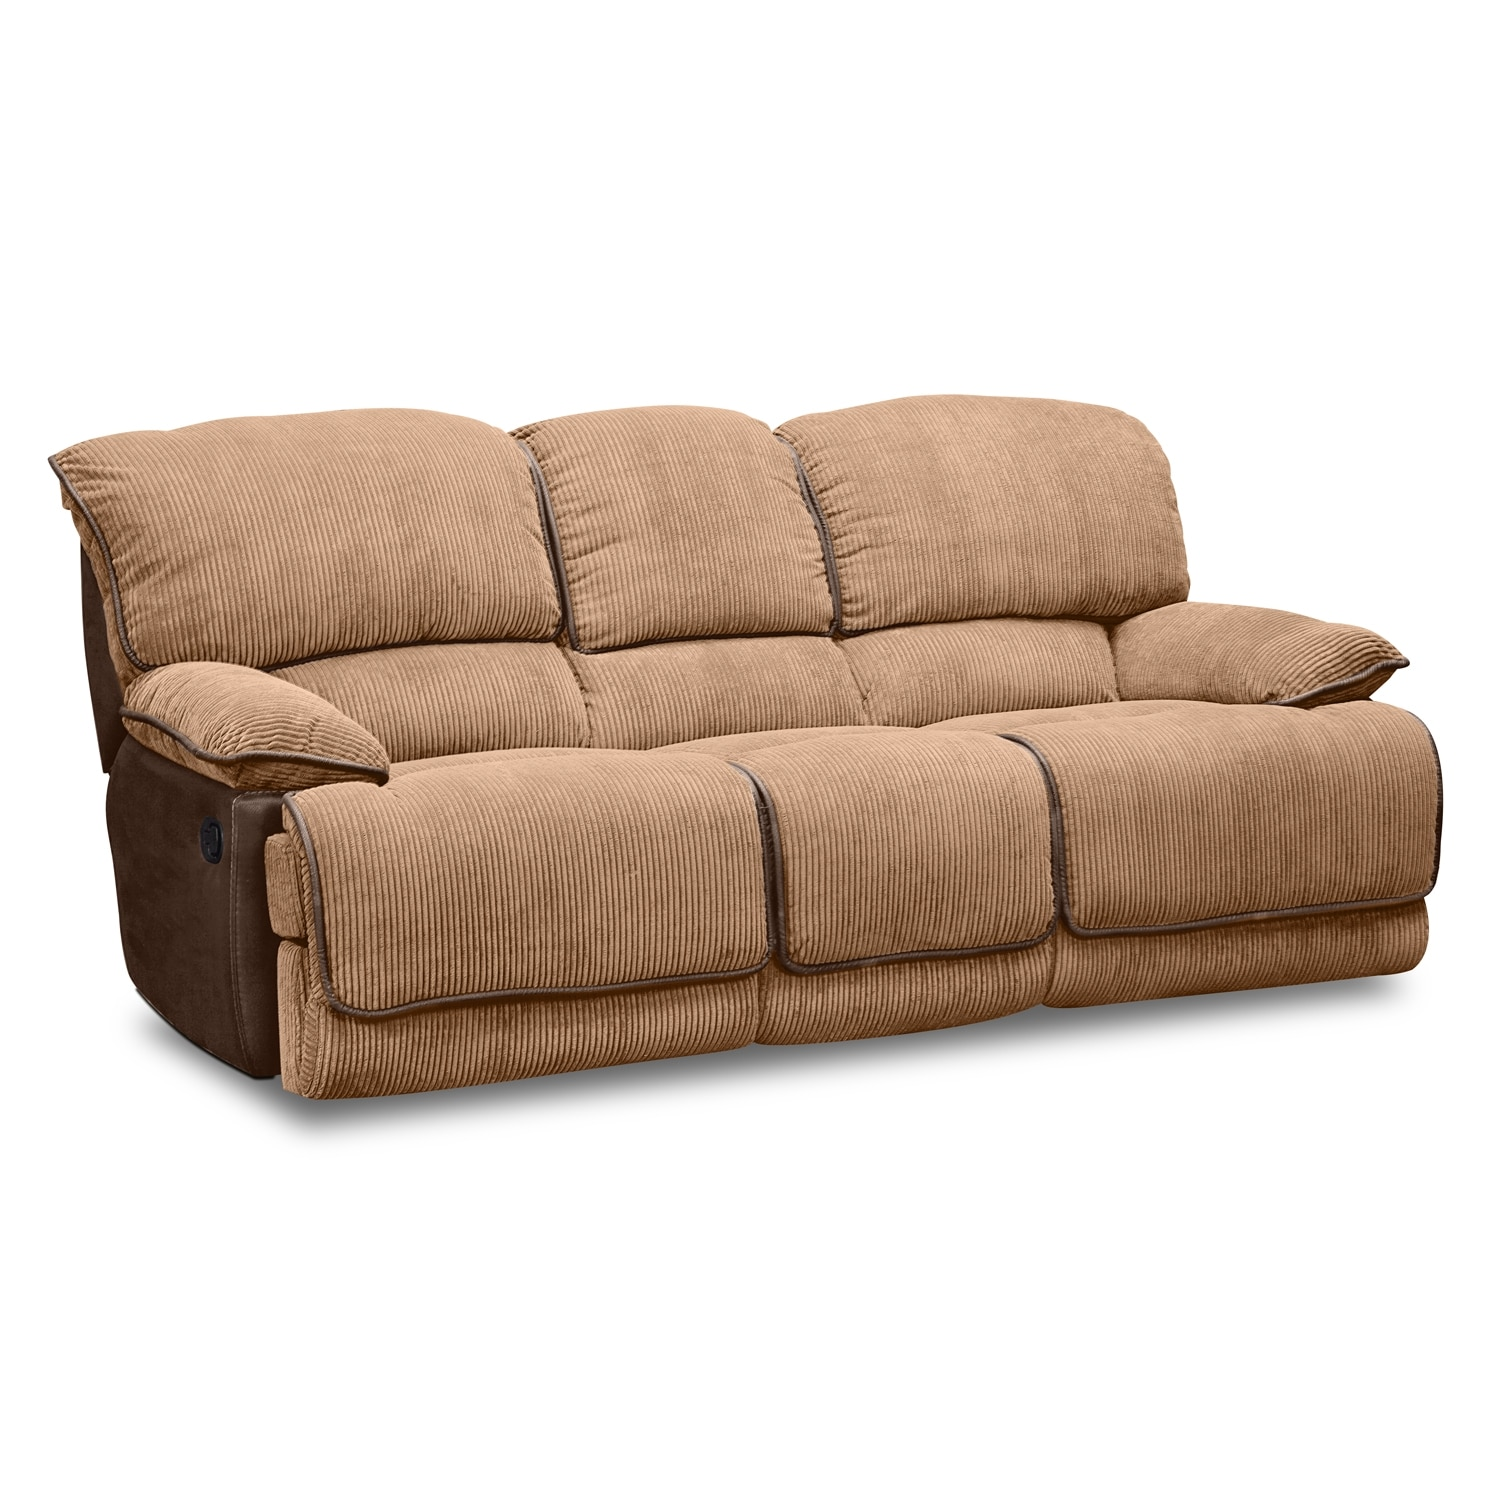 Living Room Furniture - Laguna Dual Reclining Sofa